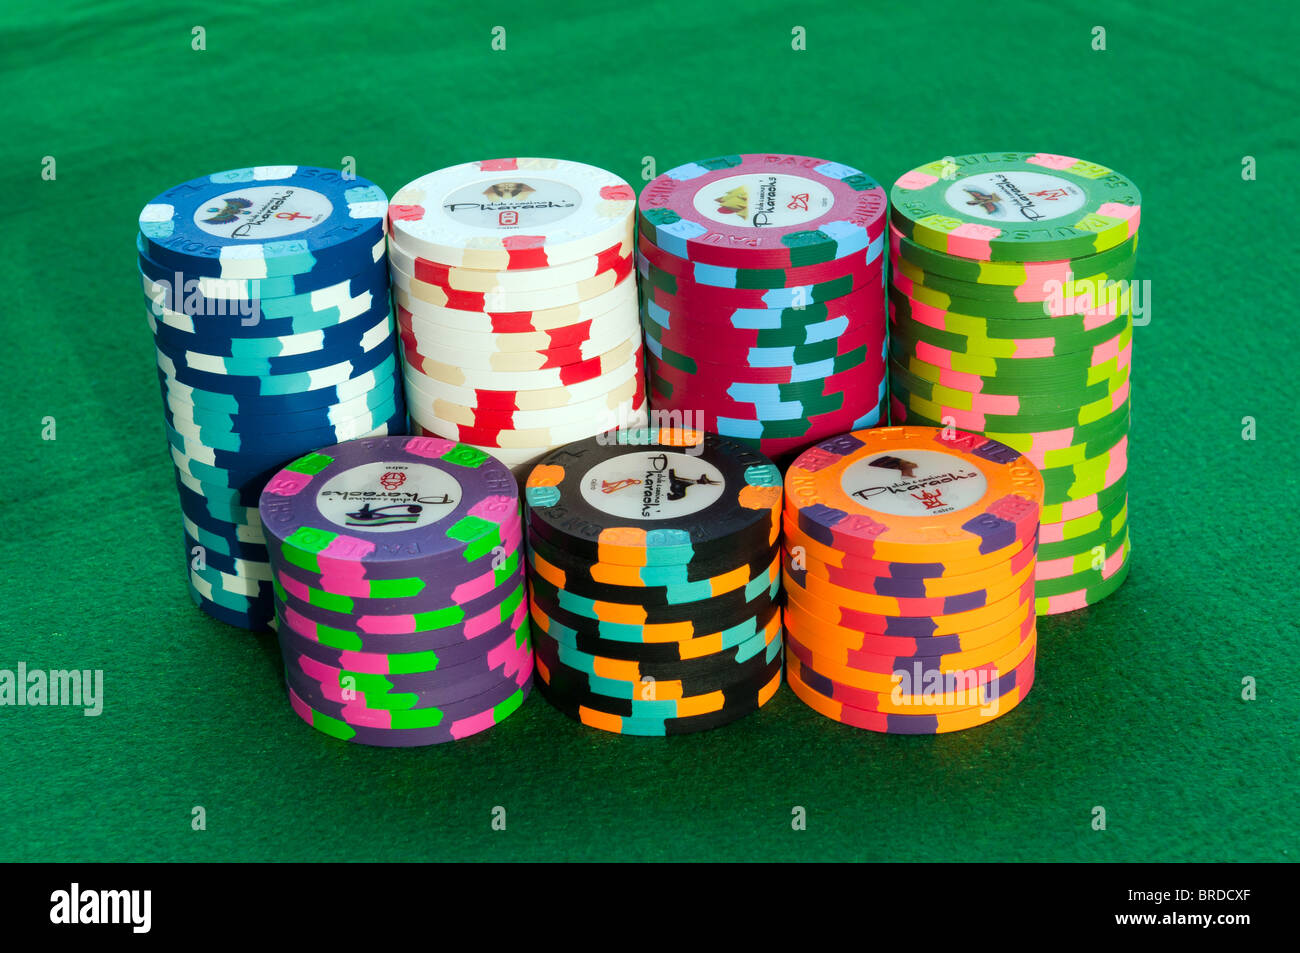 Buy real clay poker chips what is roulette bot